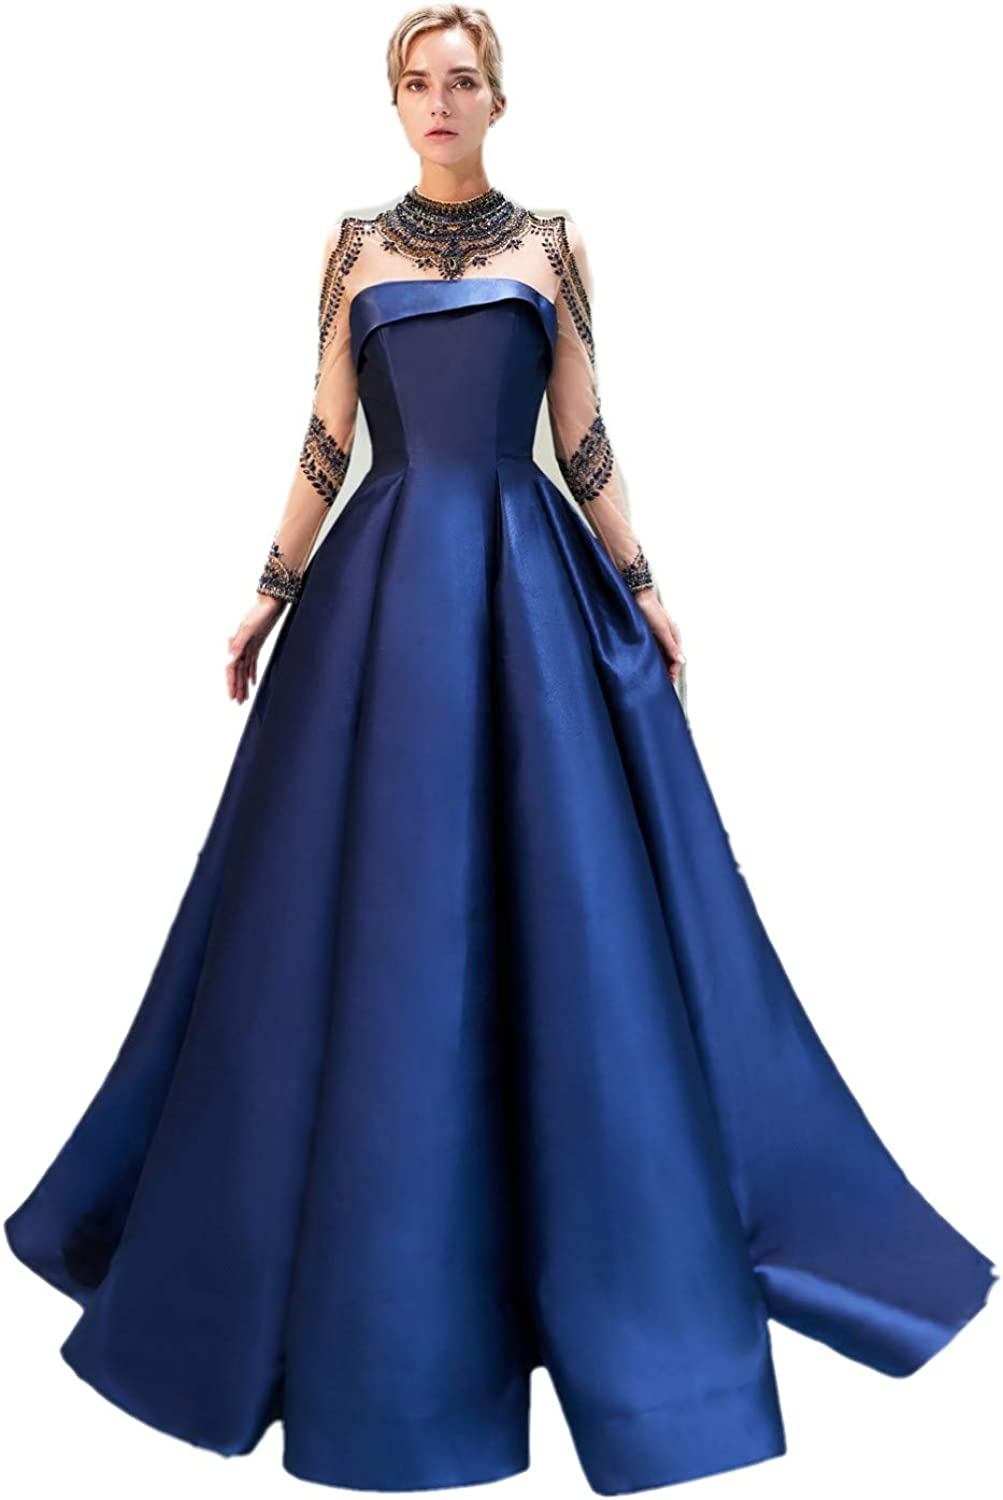 Darcy74Dulles Women's Royal bluee Evening Dresses Long Sleeves Satin Prom Gowns Dresses Elegant Formal Gowns with Beaded